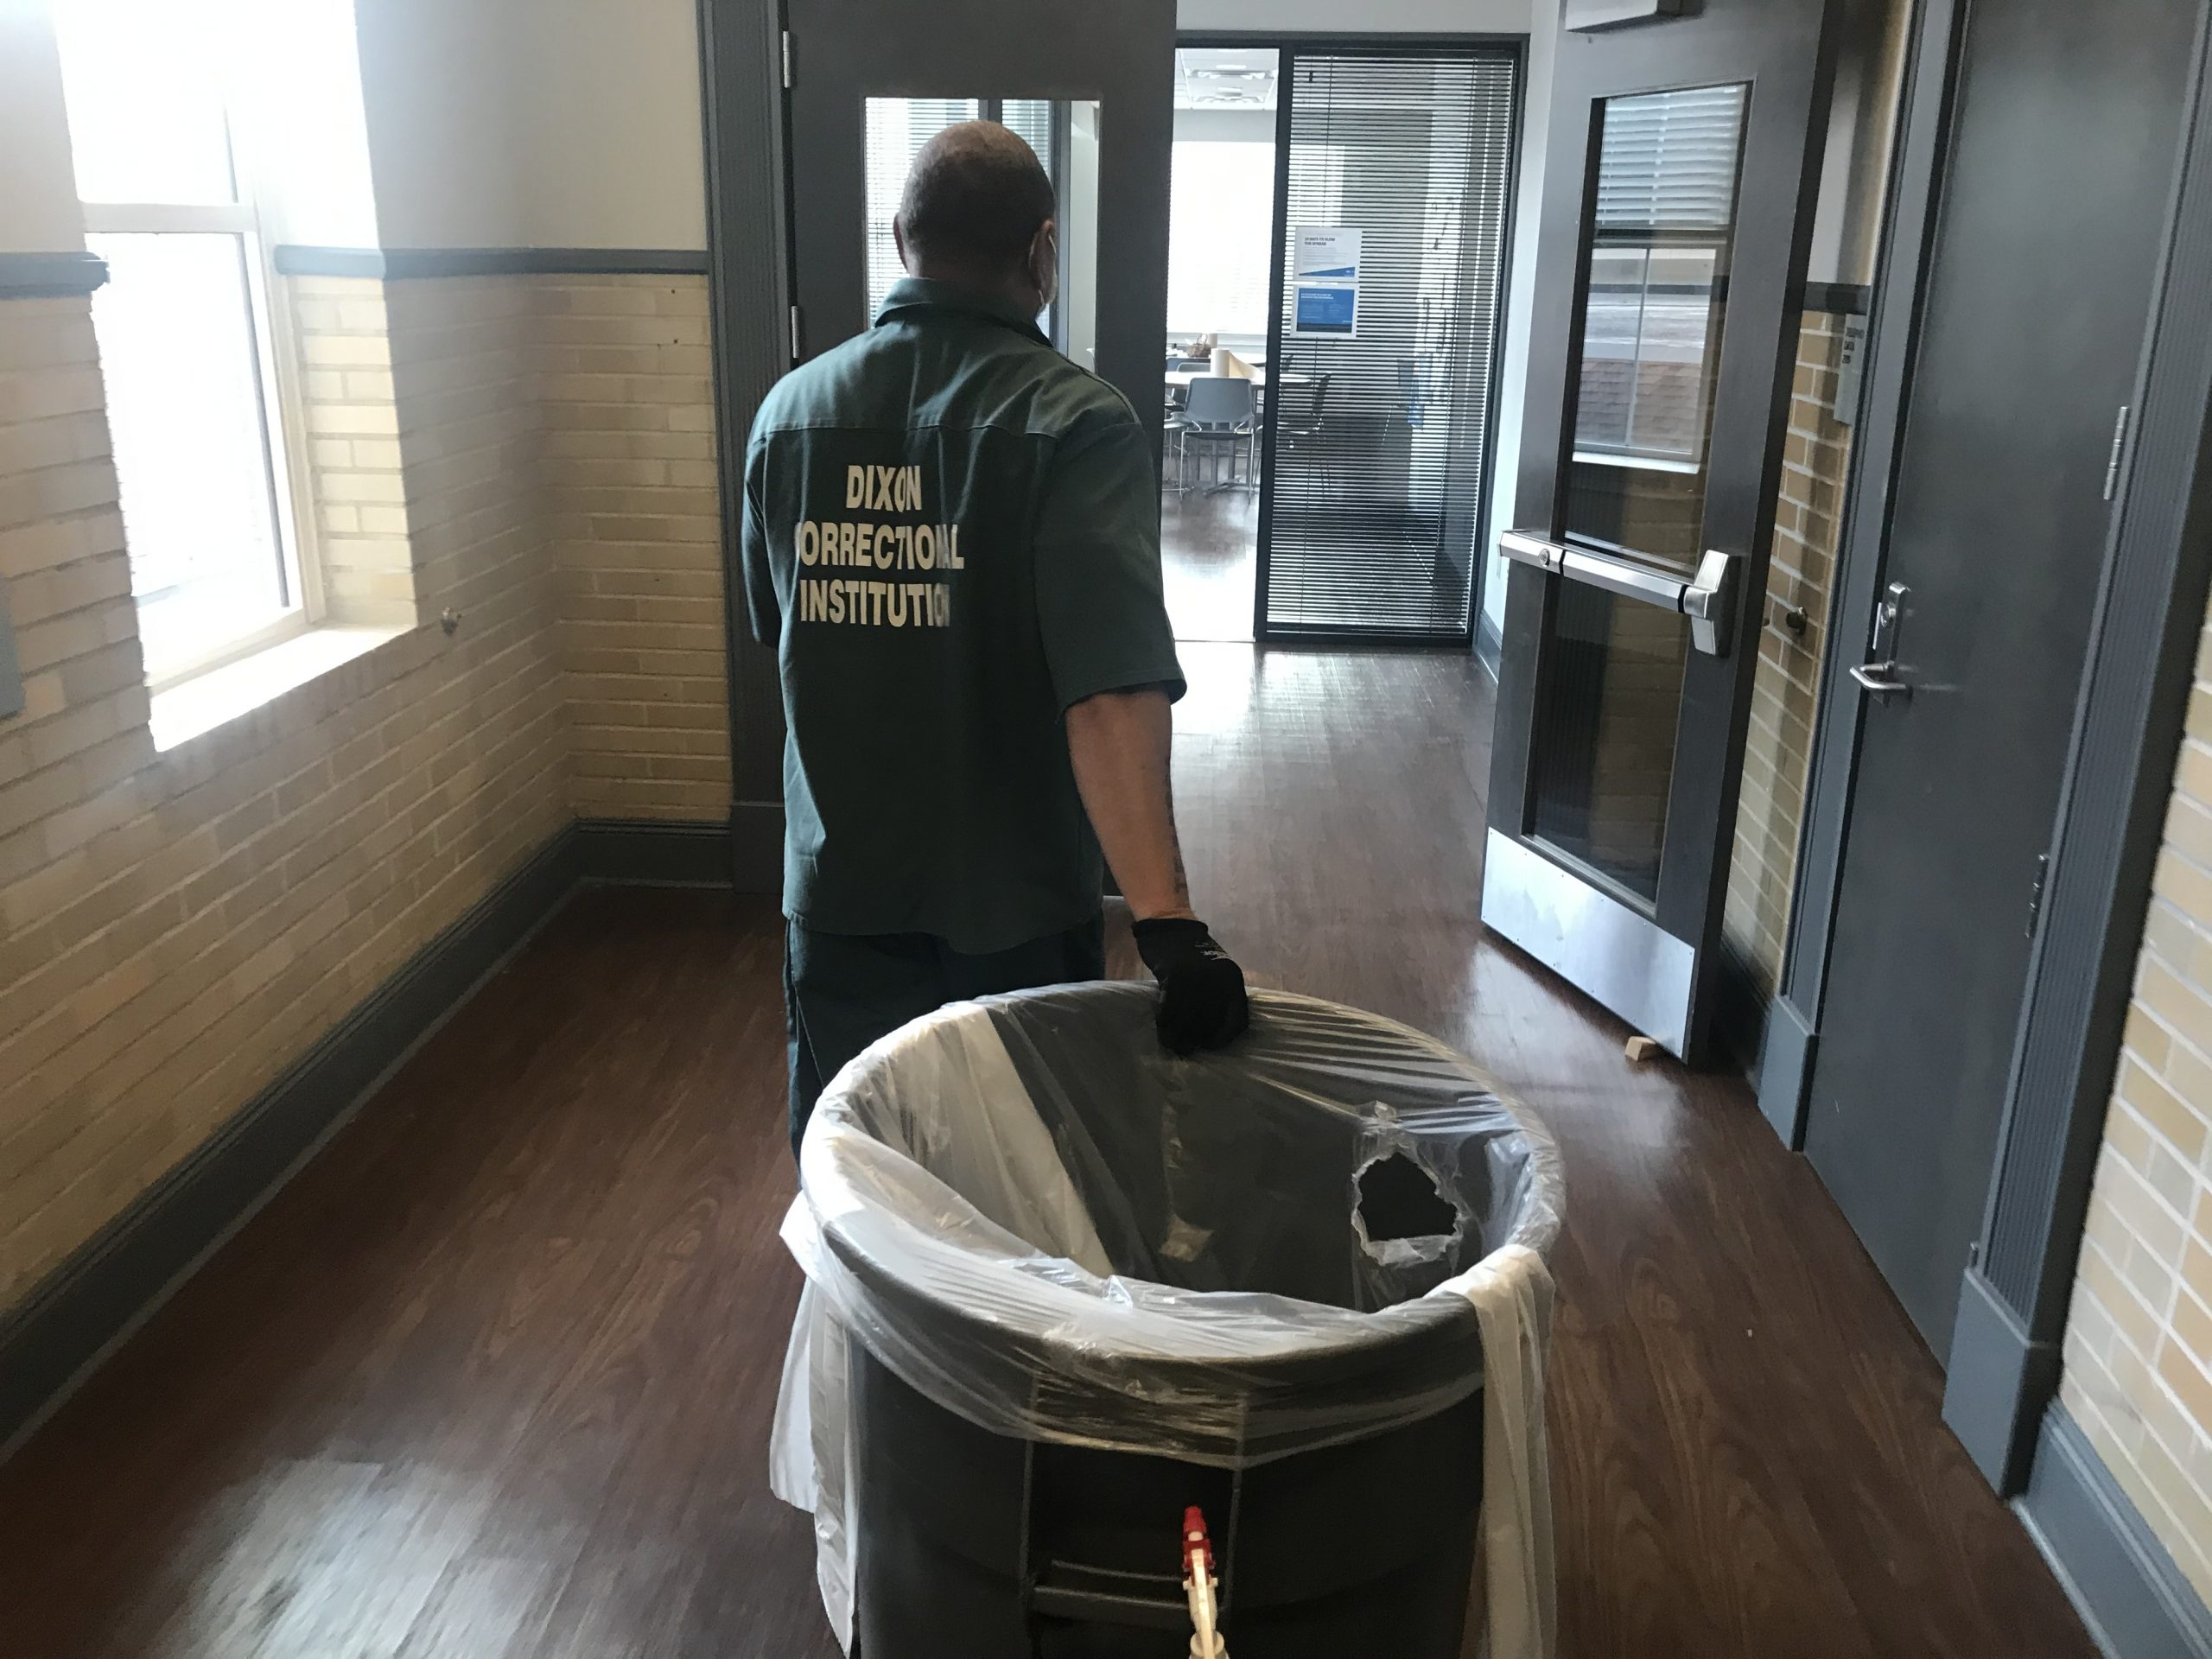 Louisiana inmate taking out the trash